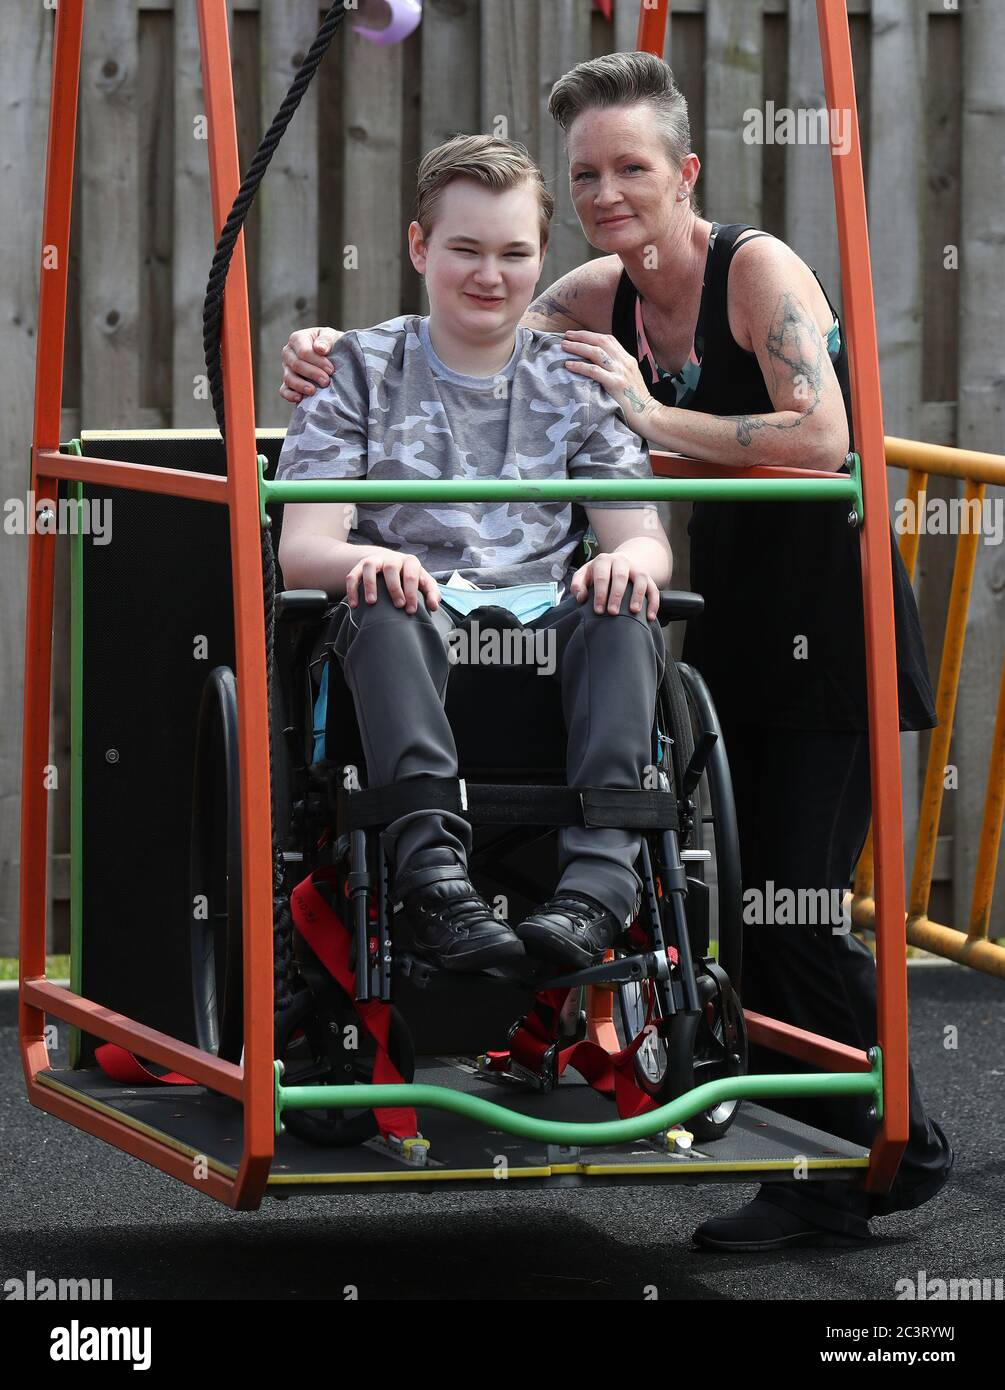 Gregor Marshall alongside his mother Karen as Gregor having a ride on the wheelchair swing in the outside therapy area at the Craighalbert Centre. Coronavirus adaptations have been installed at the Scottish Centre for Children with Motor Impairments, Craighalbert Centre, Cumbernauld, as Scotland continues gradually lifting coronavirus lockdown measures. Stock Photo